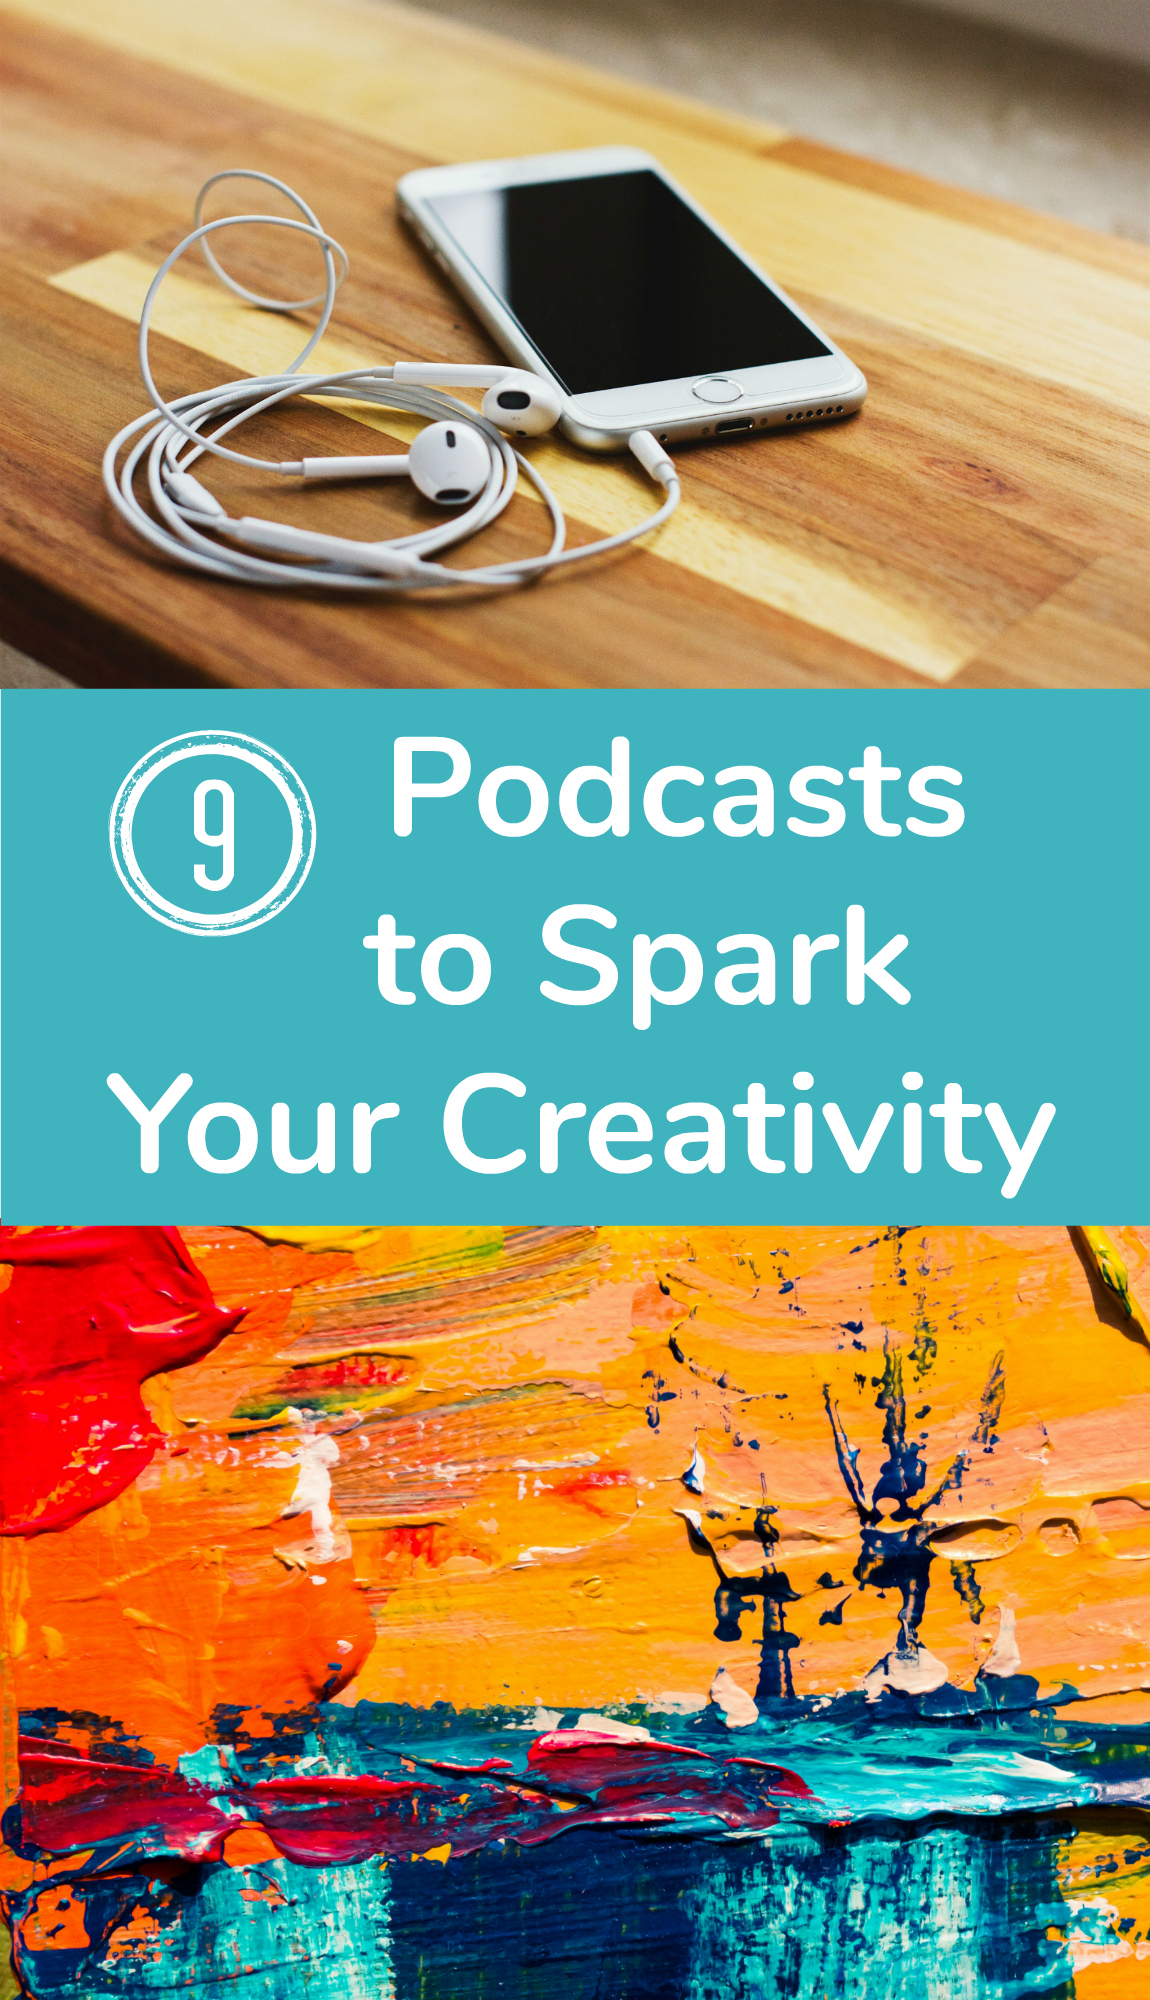 9 Podcasts to Spark Your Creativity